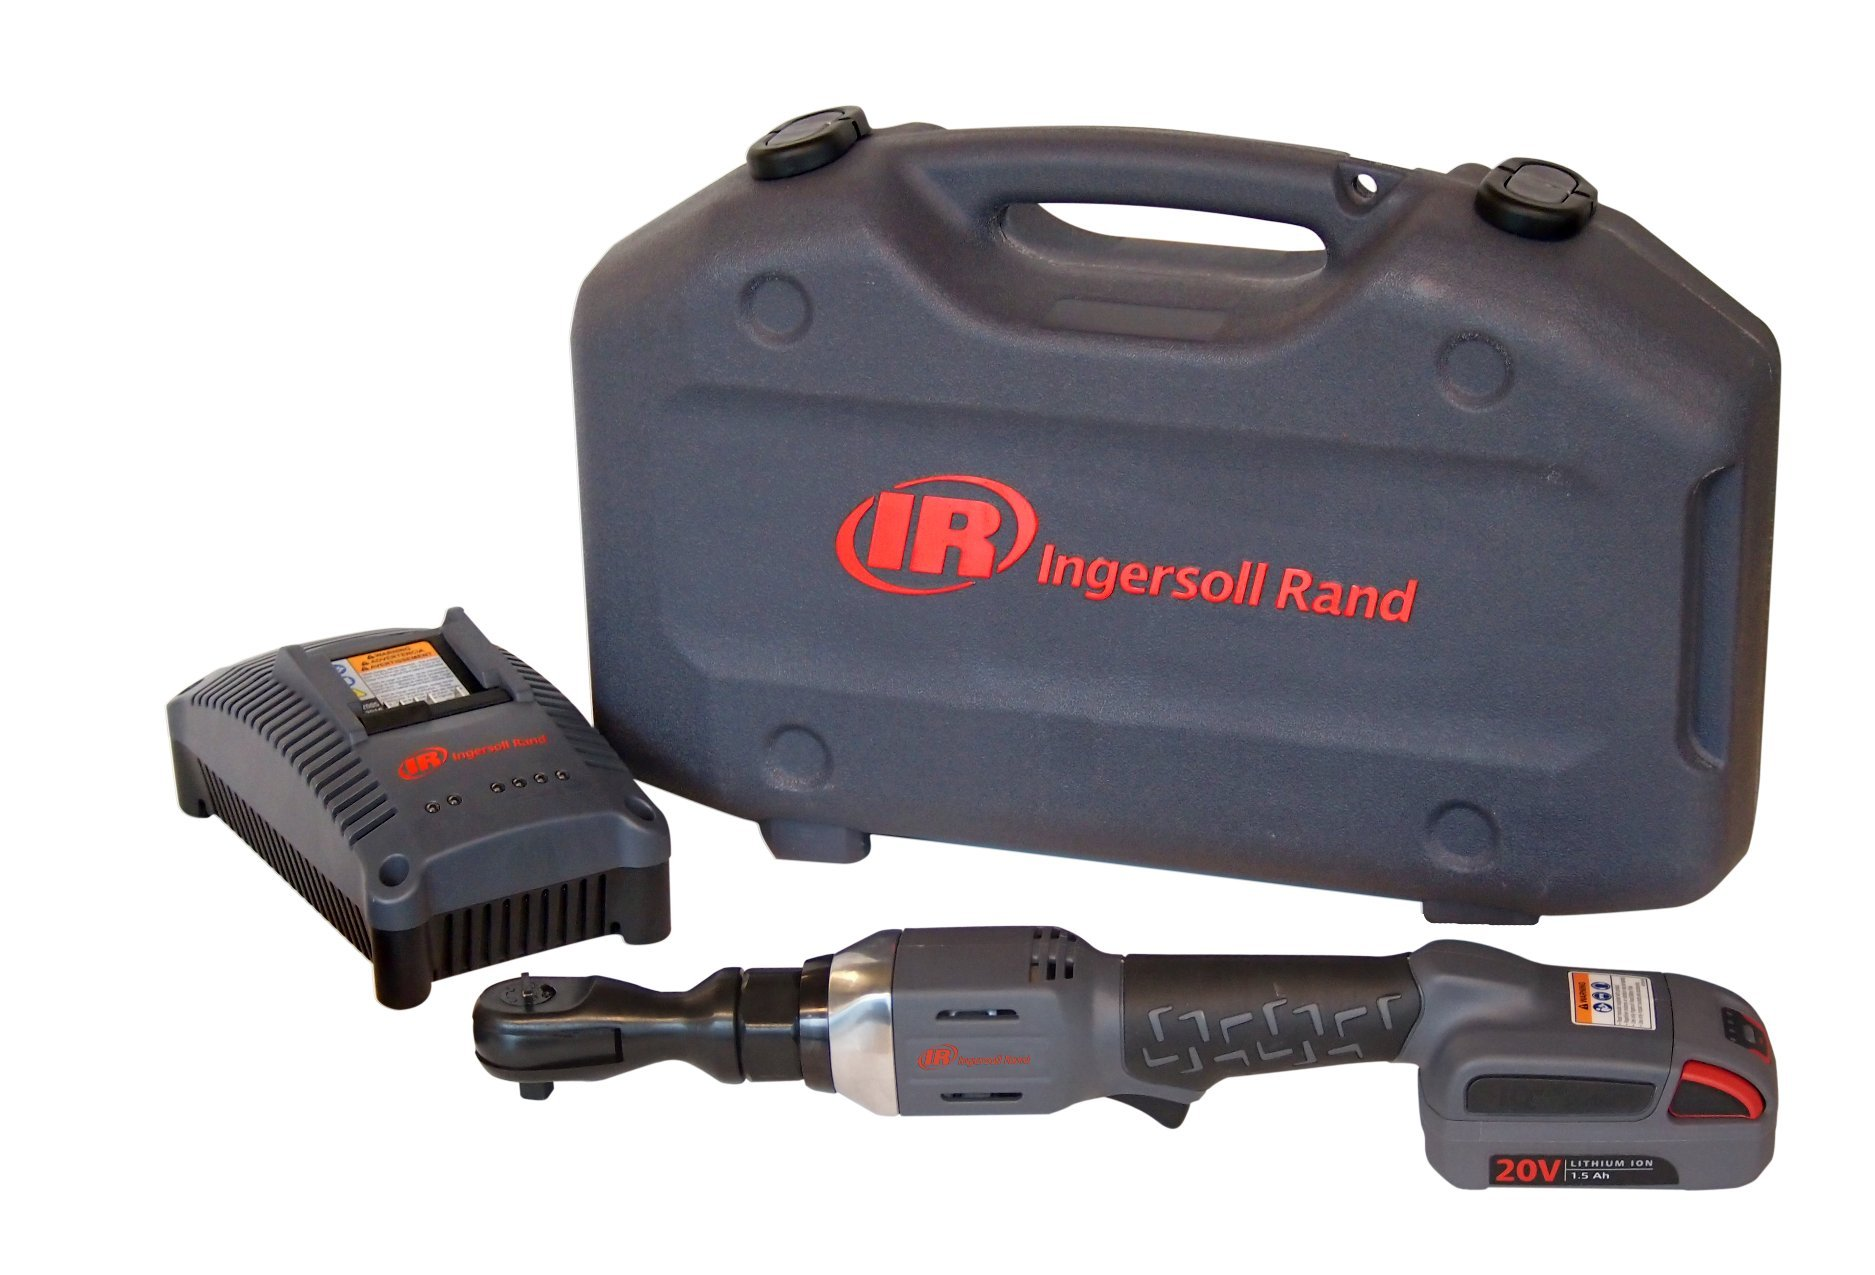 Ingersoll Rand R3130-K1 3/8-Inch Cordless Ratchet, 1 Li-on Battery, Charger and Case